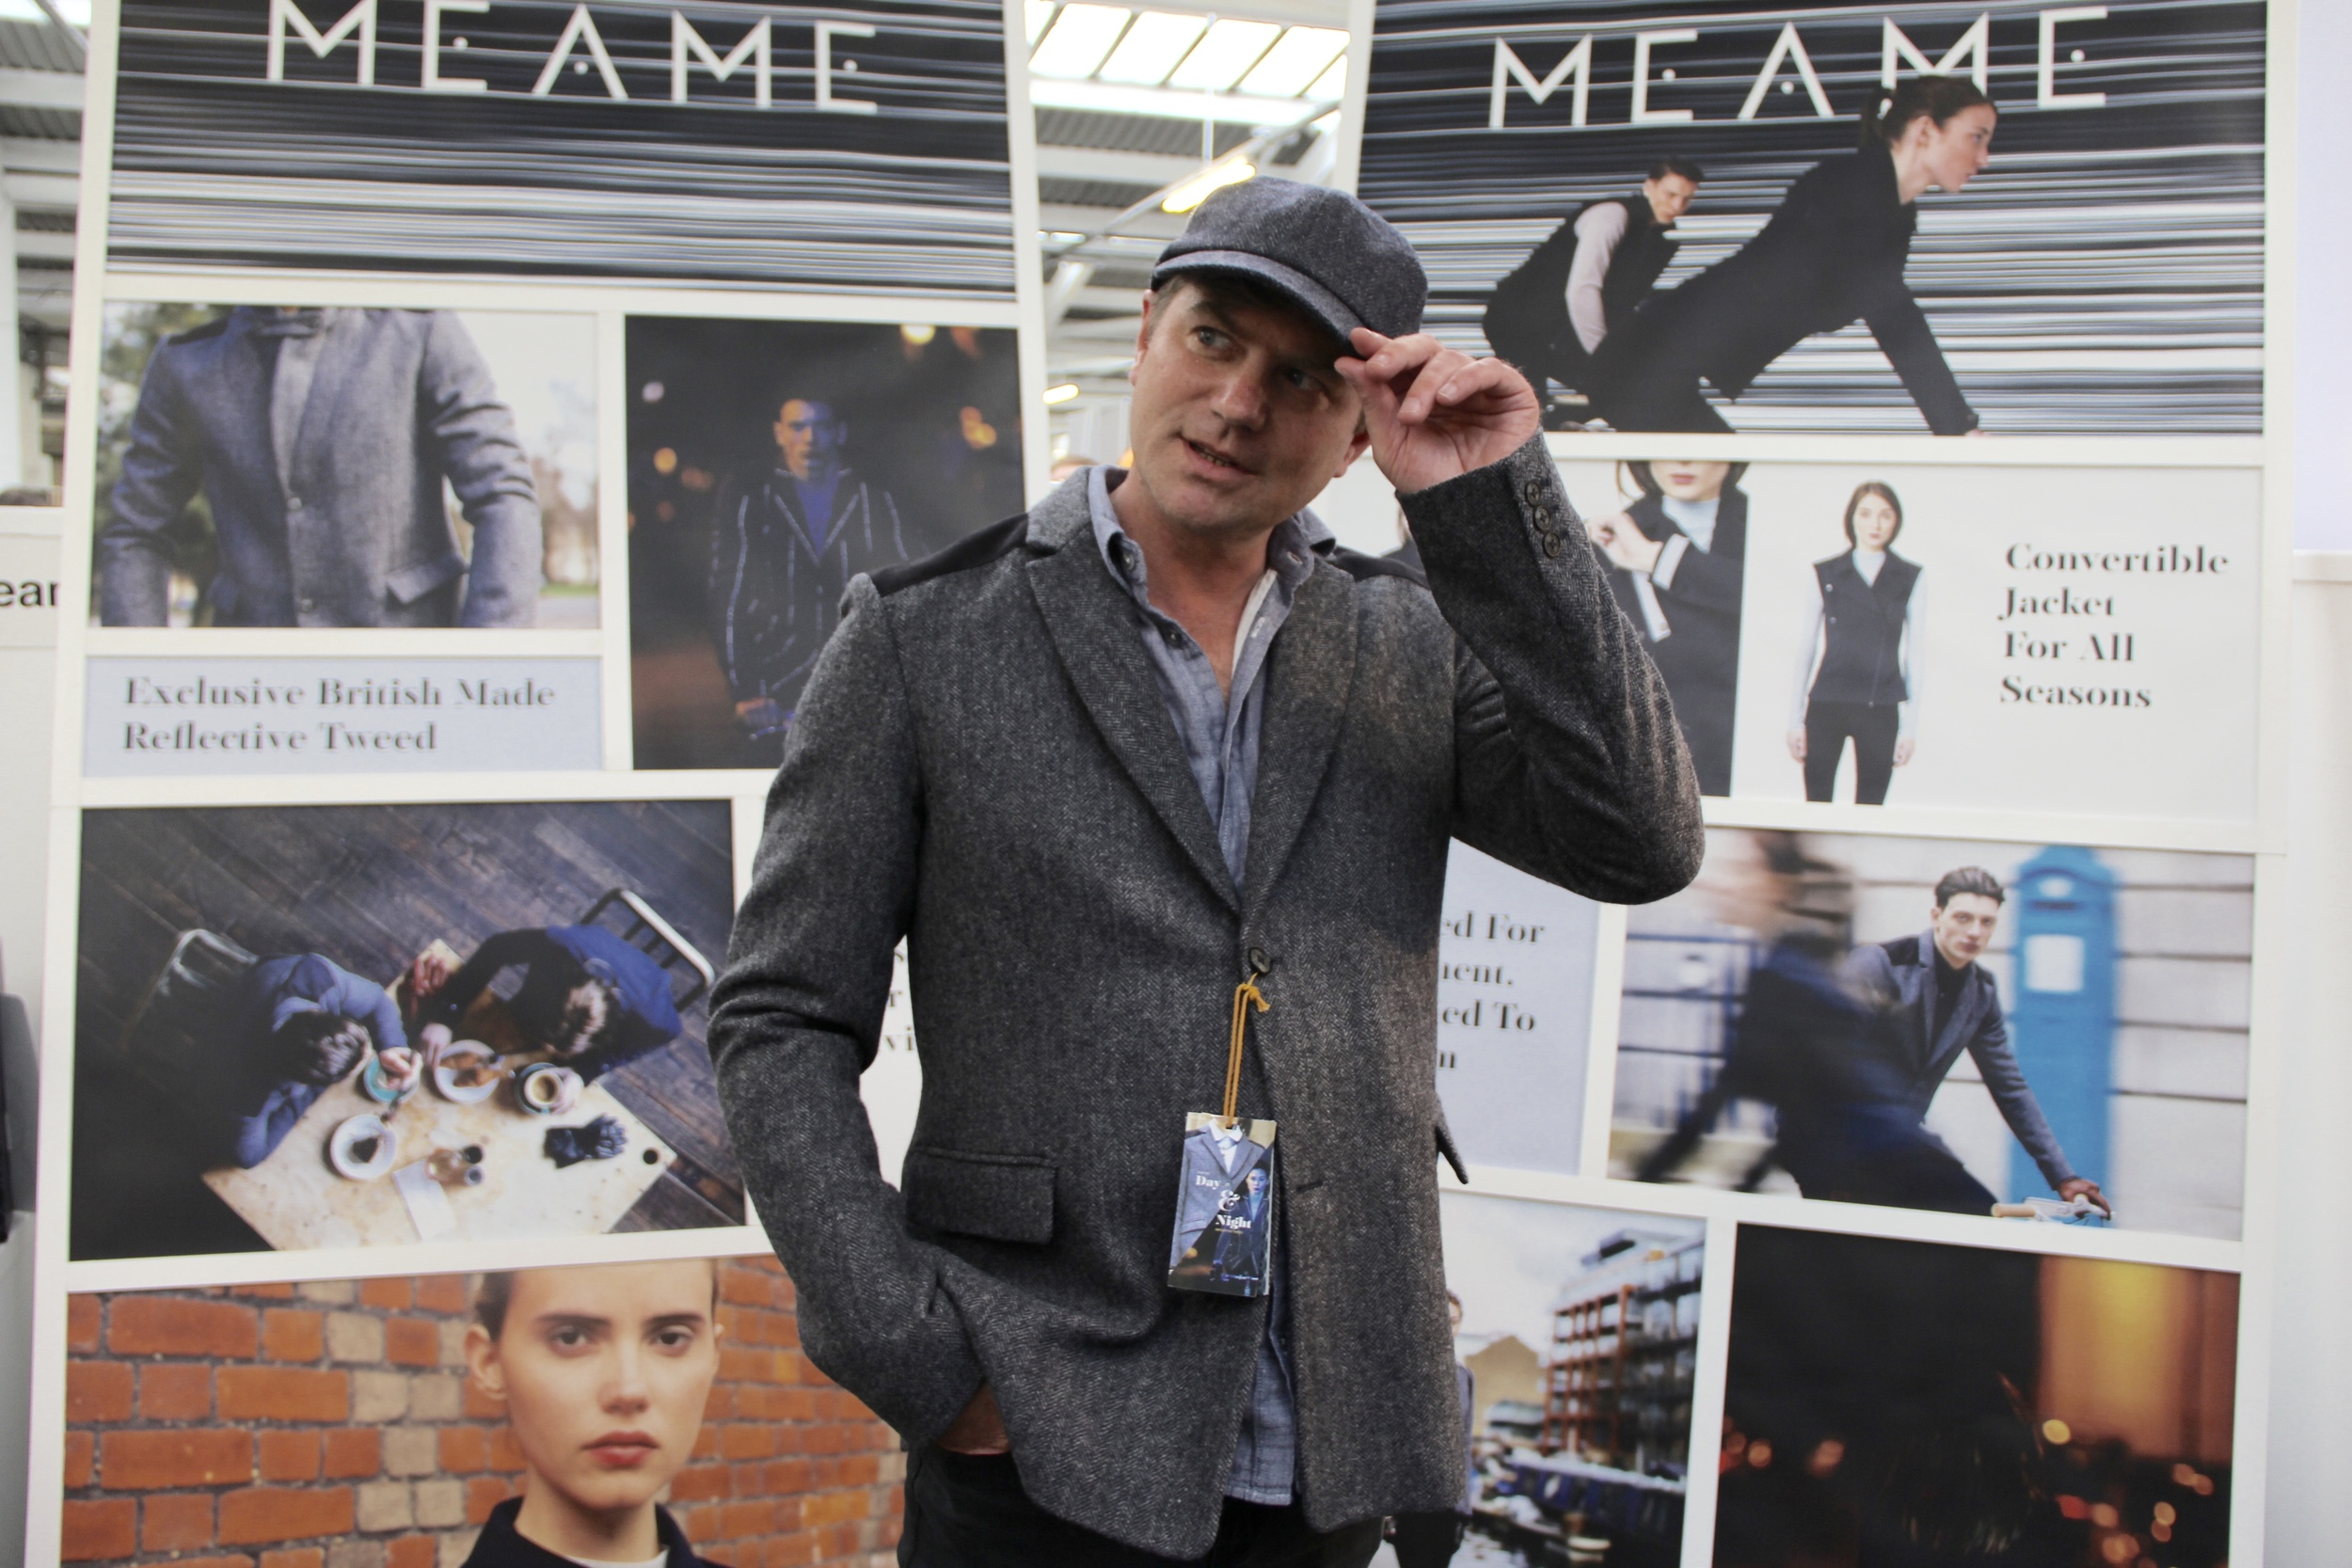 Robbie was keen to keep the  Meame  tweed jacket and matching cap £295 and £55 respectively